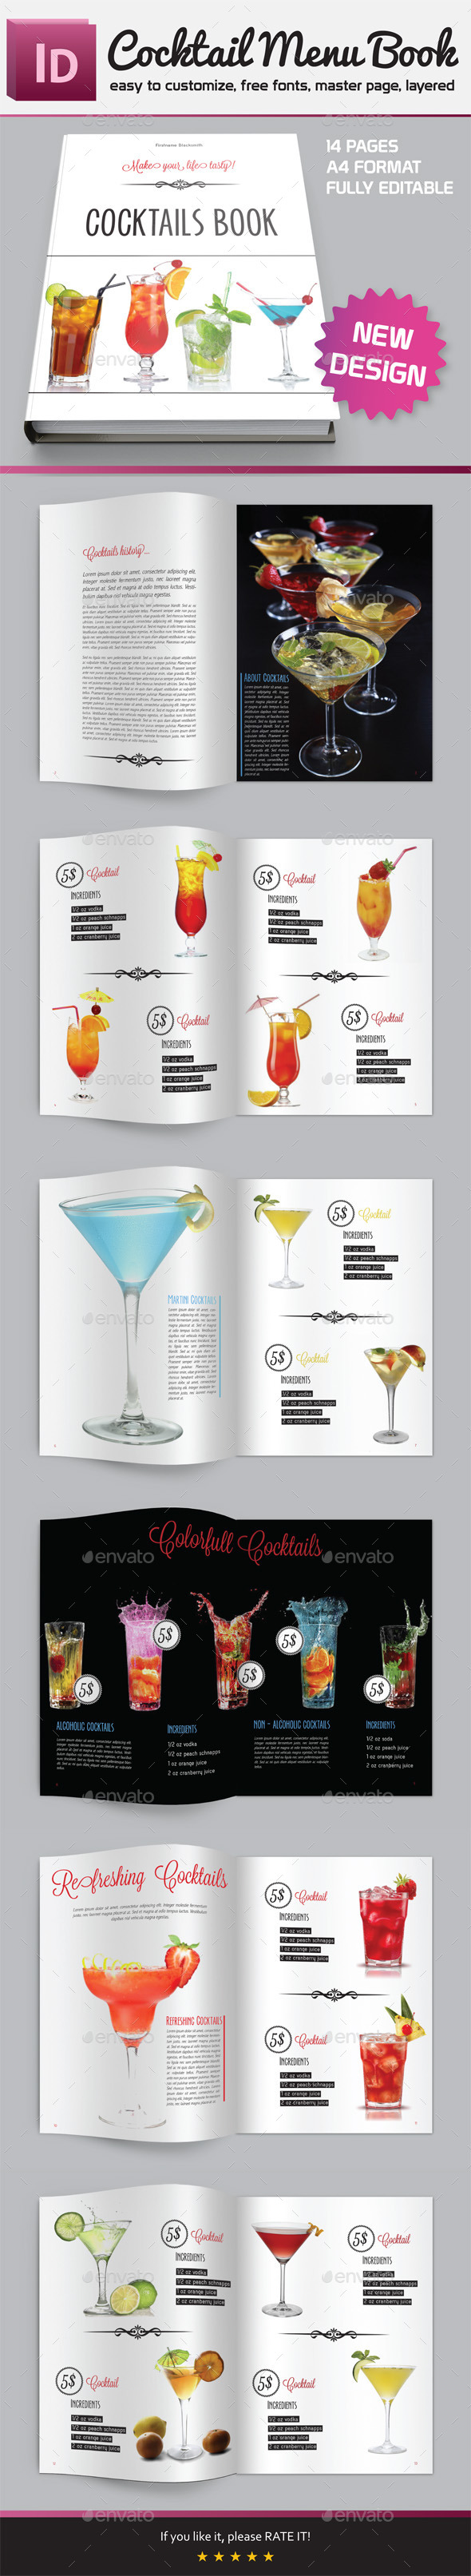 GraphicRiver Cocktail Menu Book 9930398